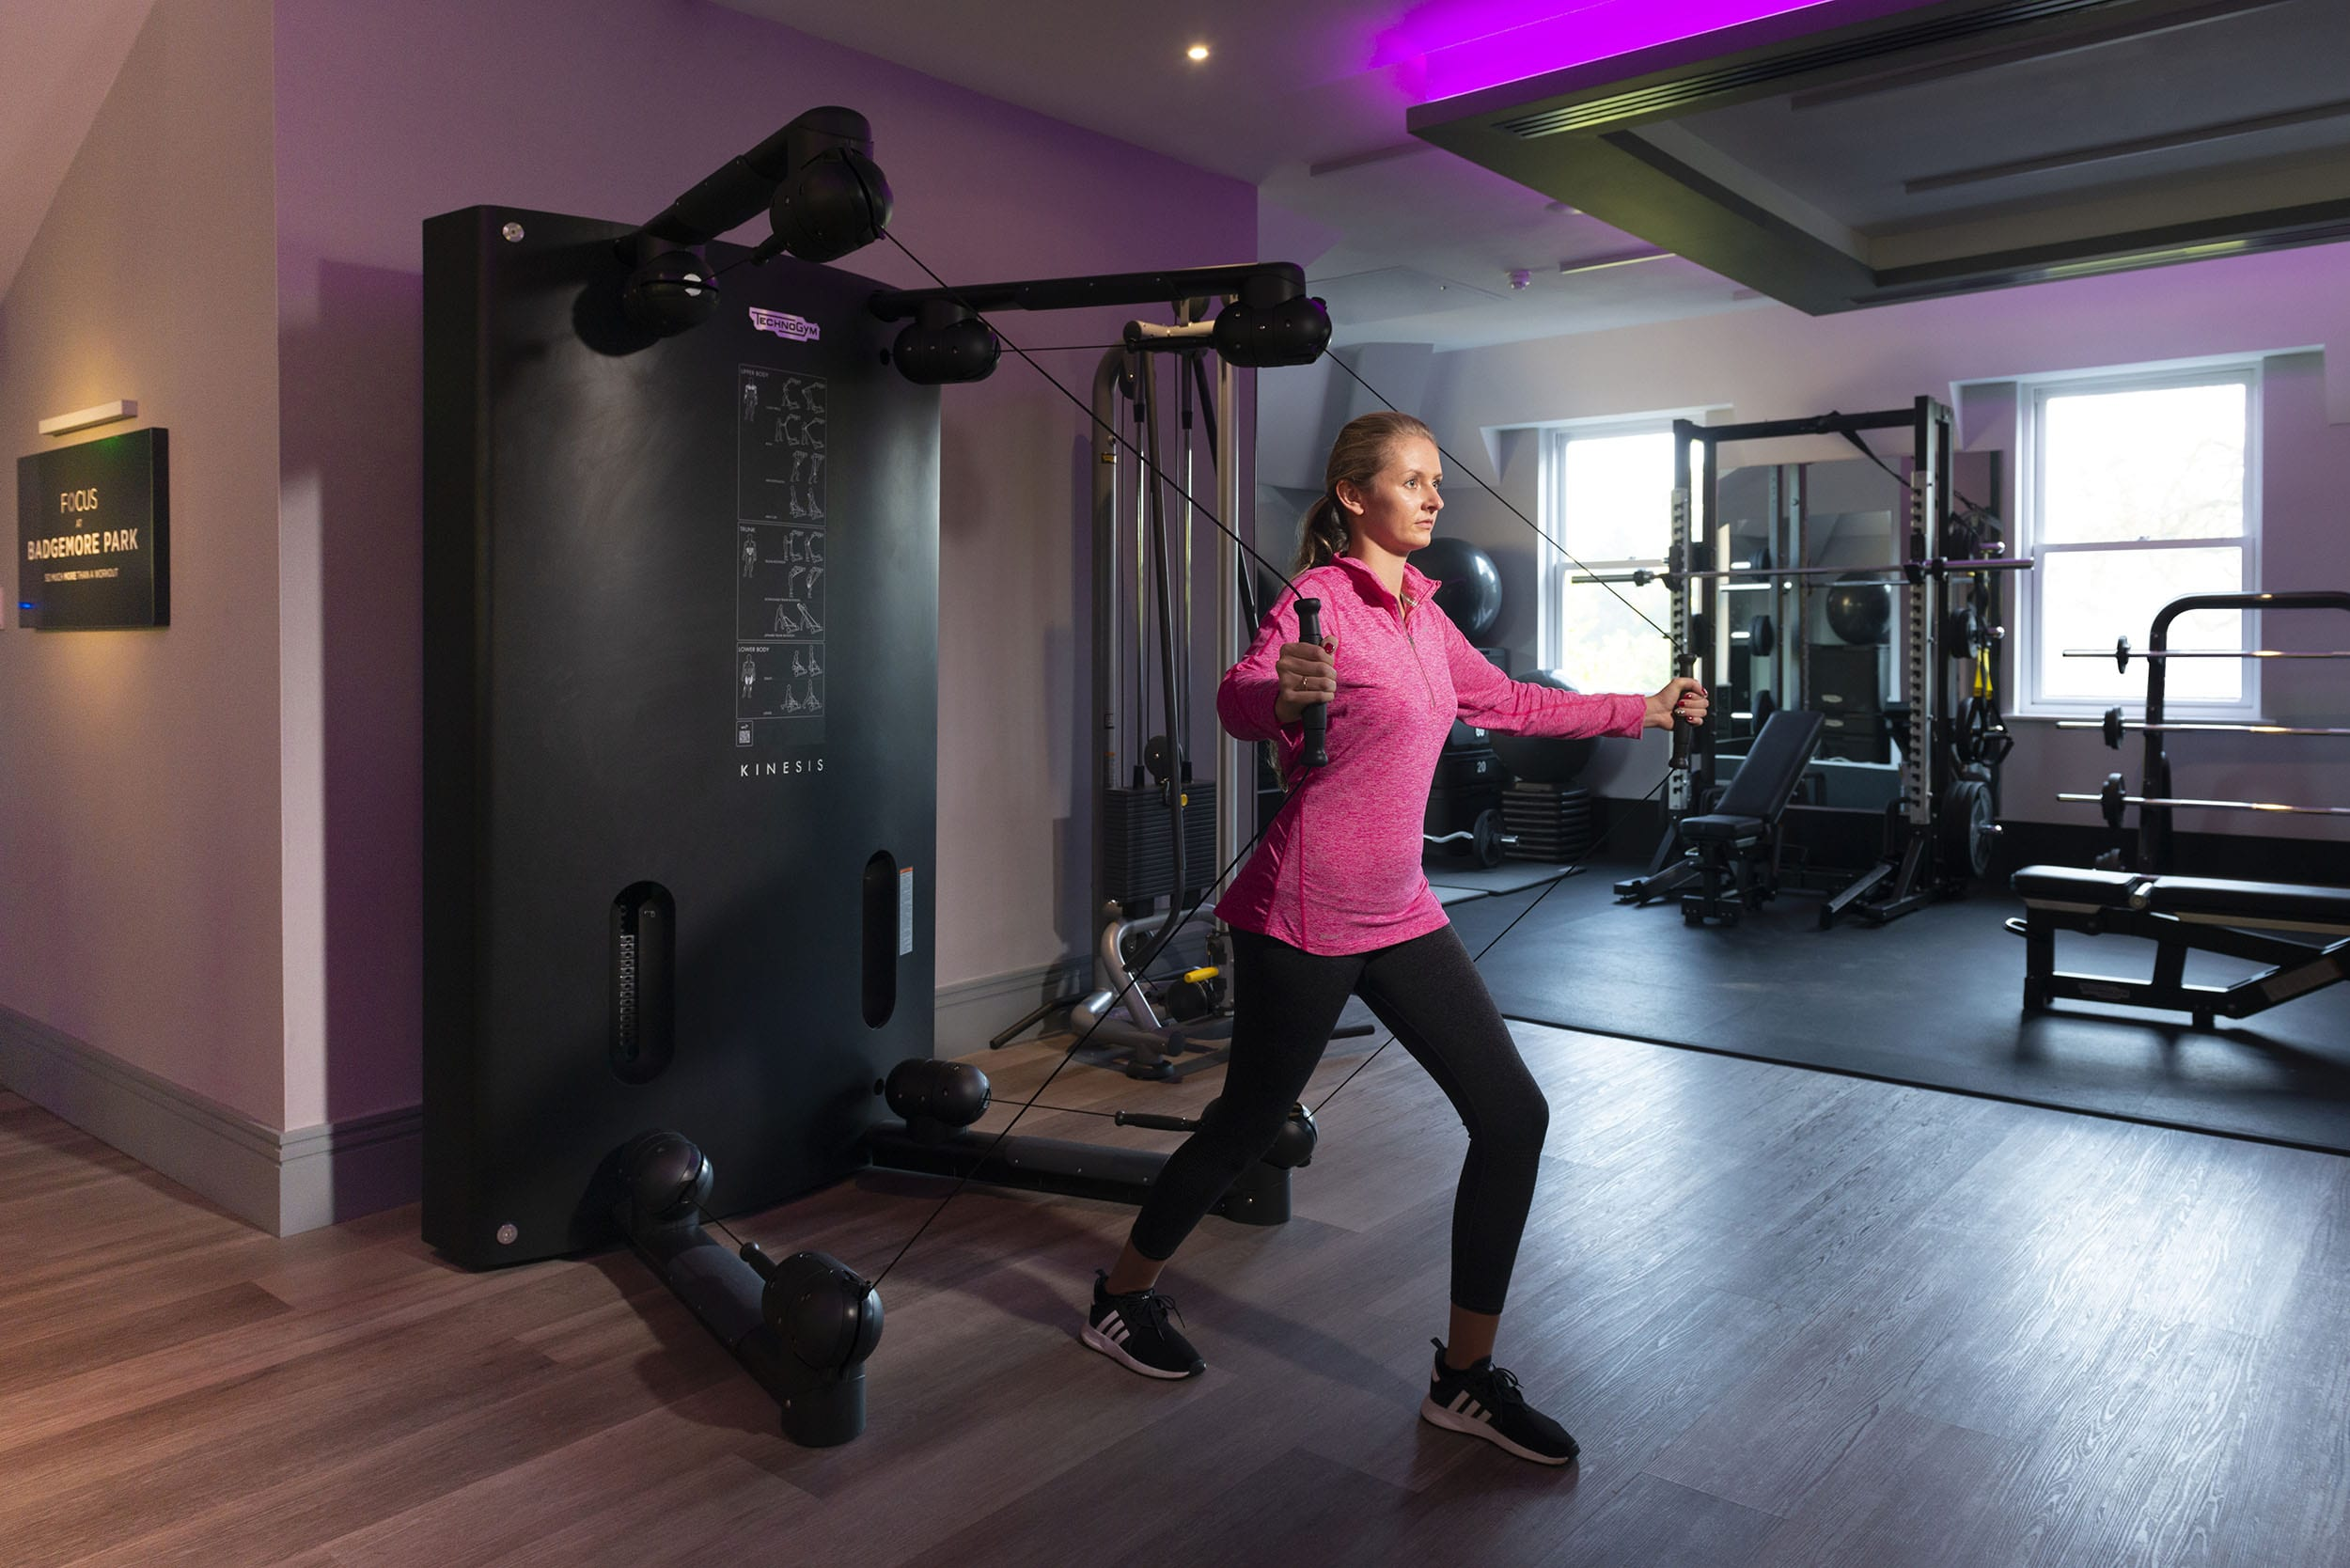 Best gym in Henley-on-Thames with TRX exercise classes at Badgemore Park